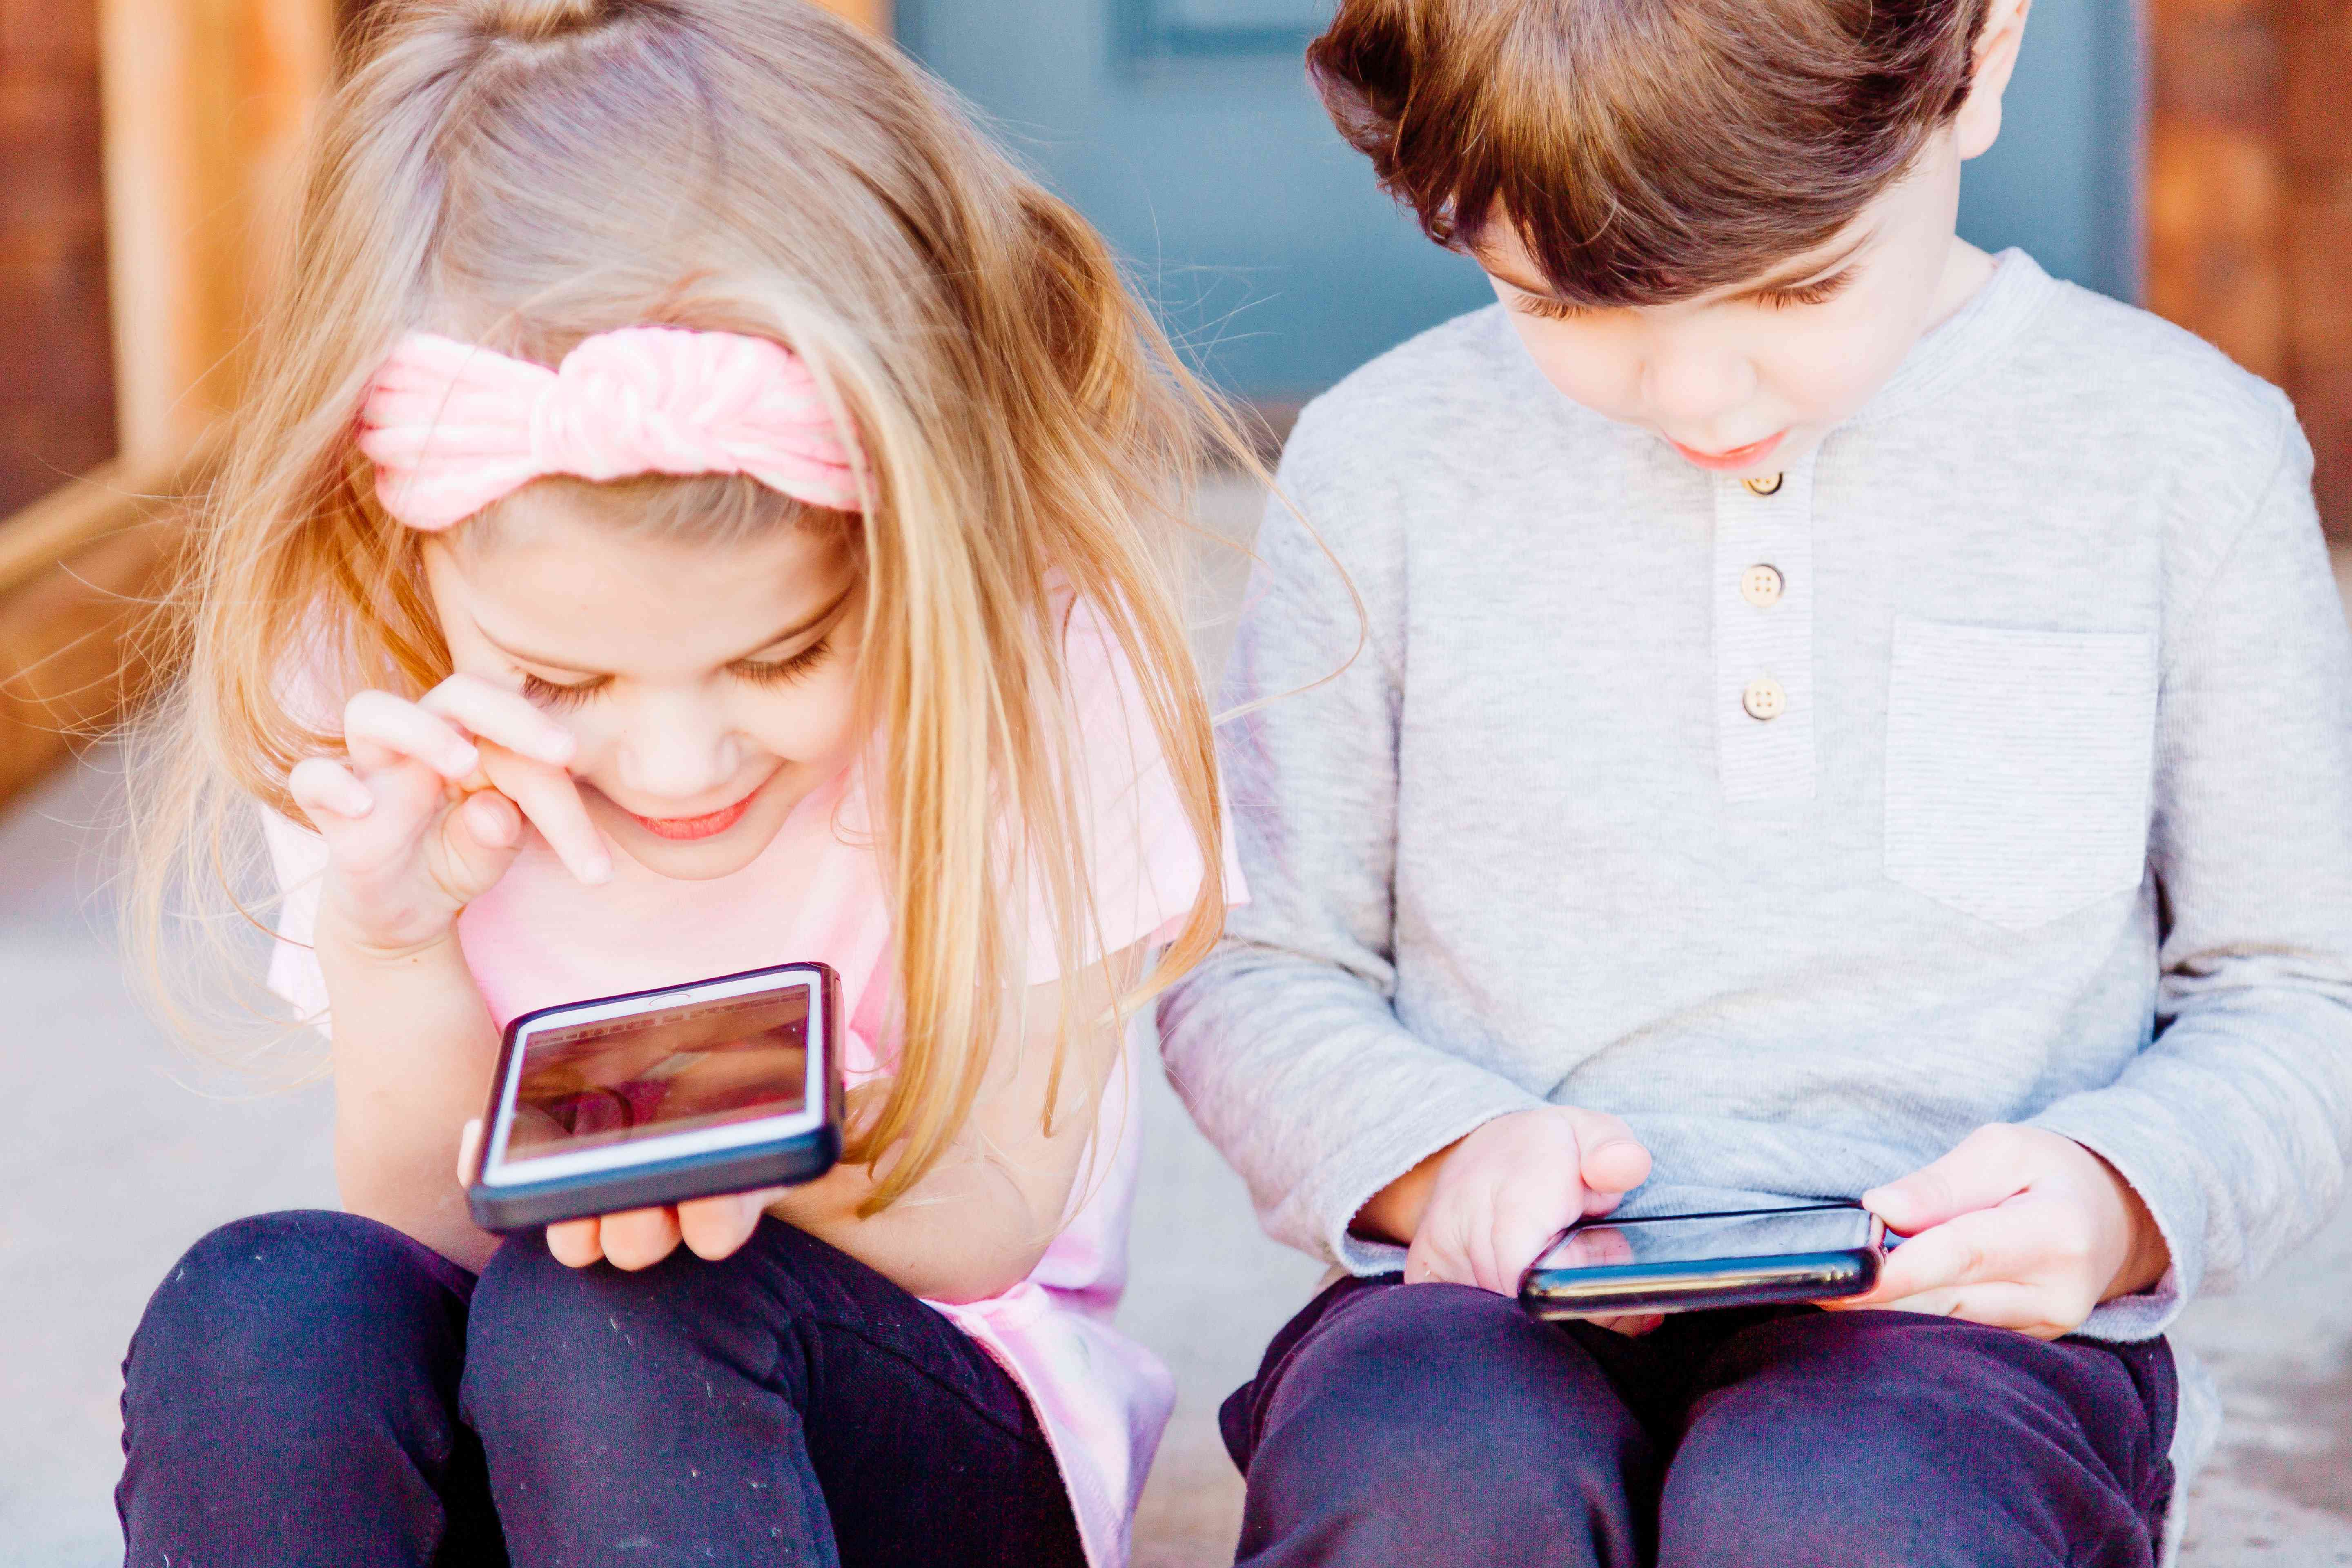 Two young kids using smartphones.